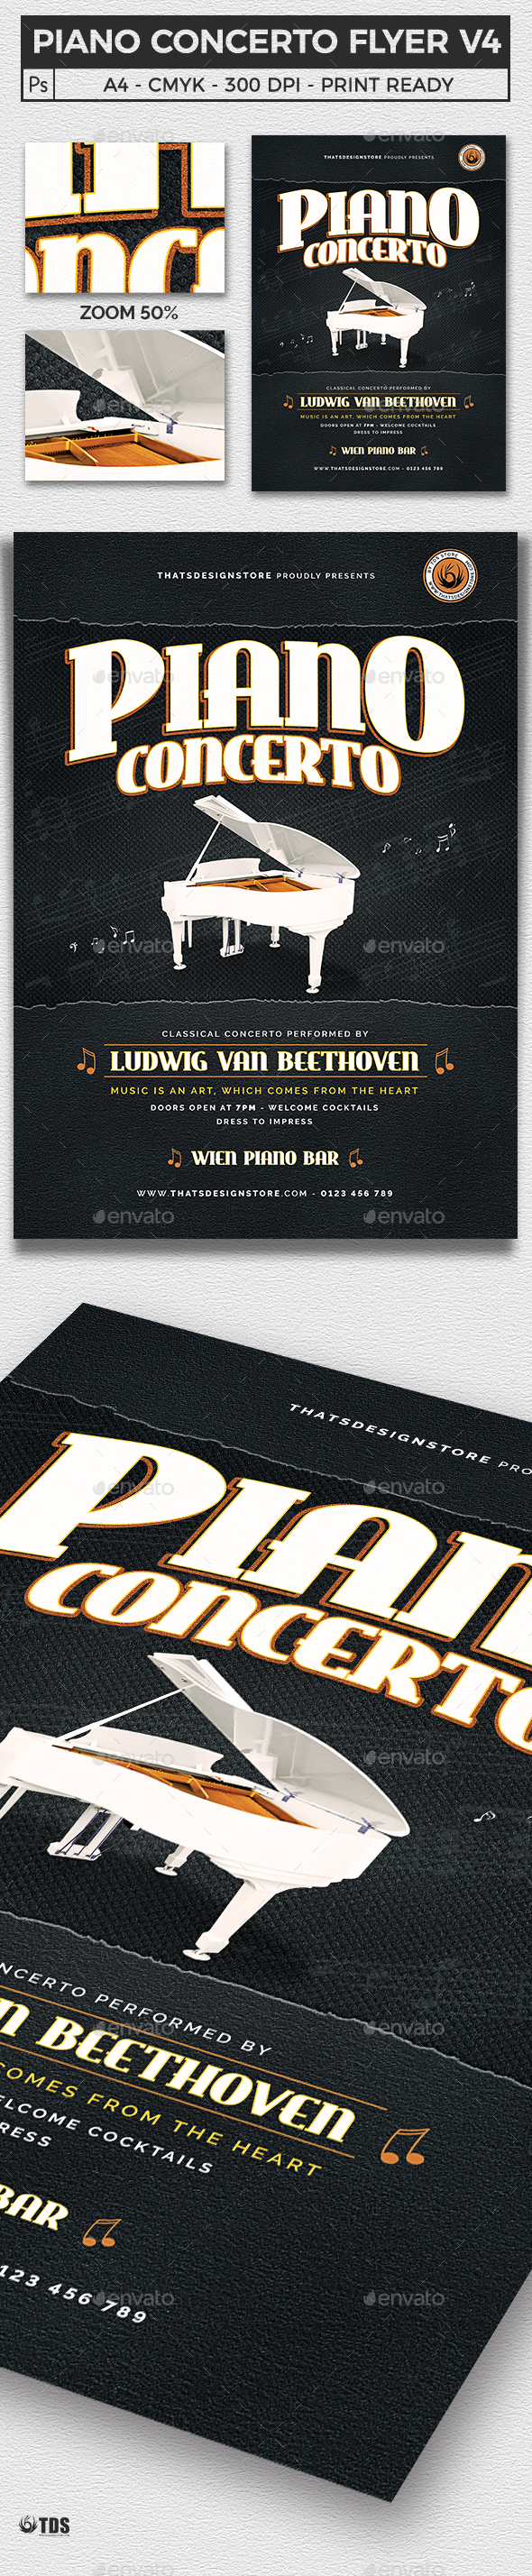 Piano Concerto Flyer Template V4 - Concerts Events